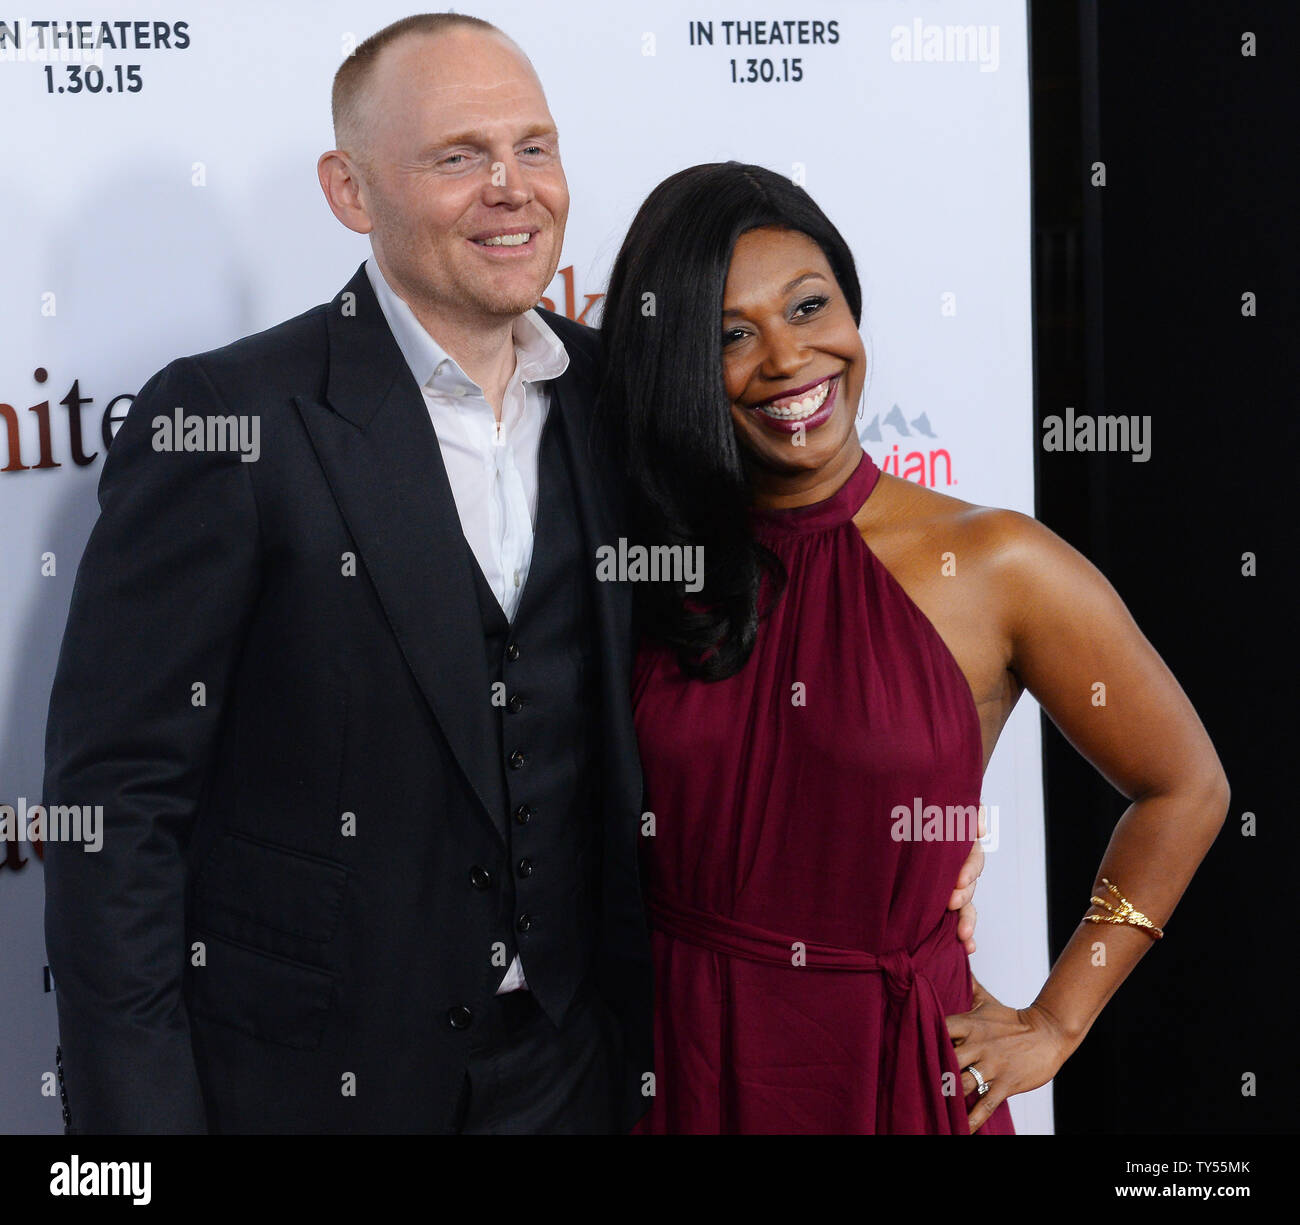 Bill Burr High Resolution Stock Photography And Images Alamy